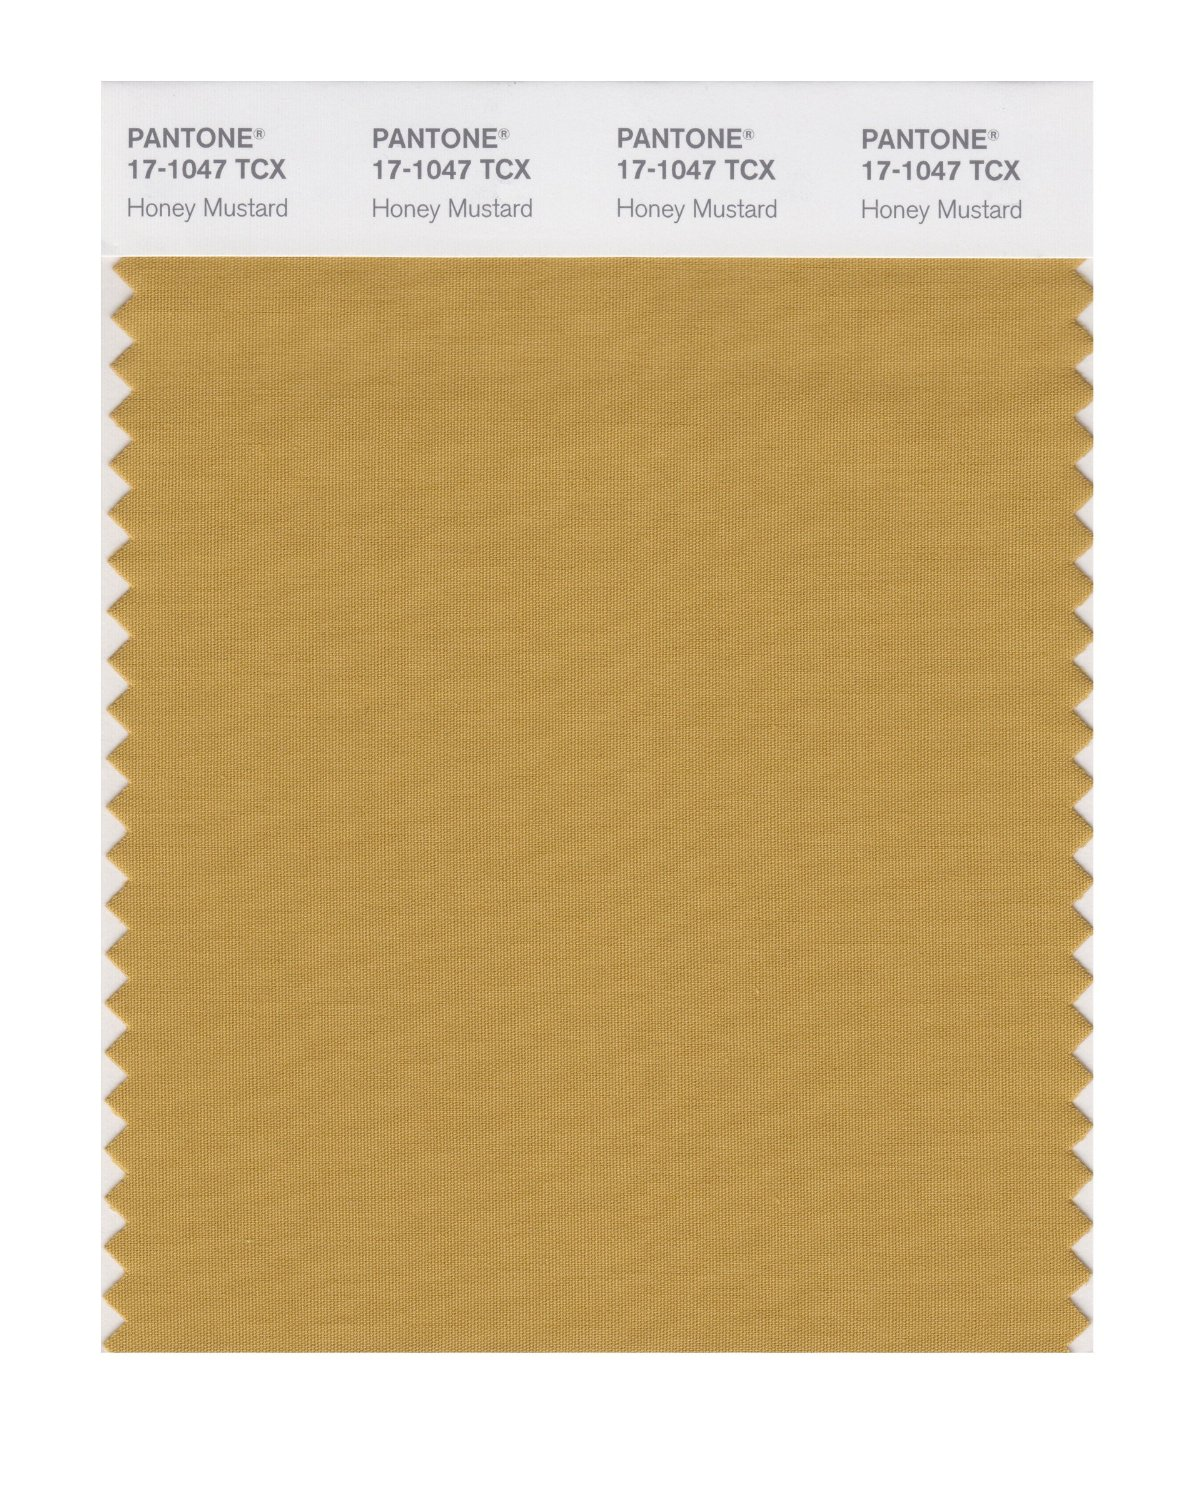 Pantone Smart Swatch 17-1047 Honey Mustard